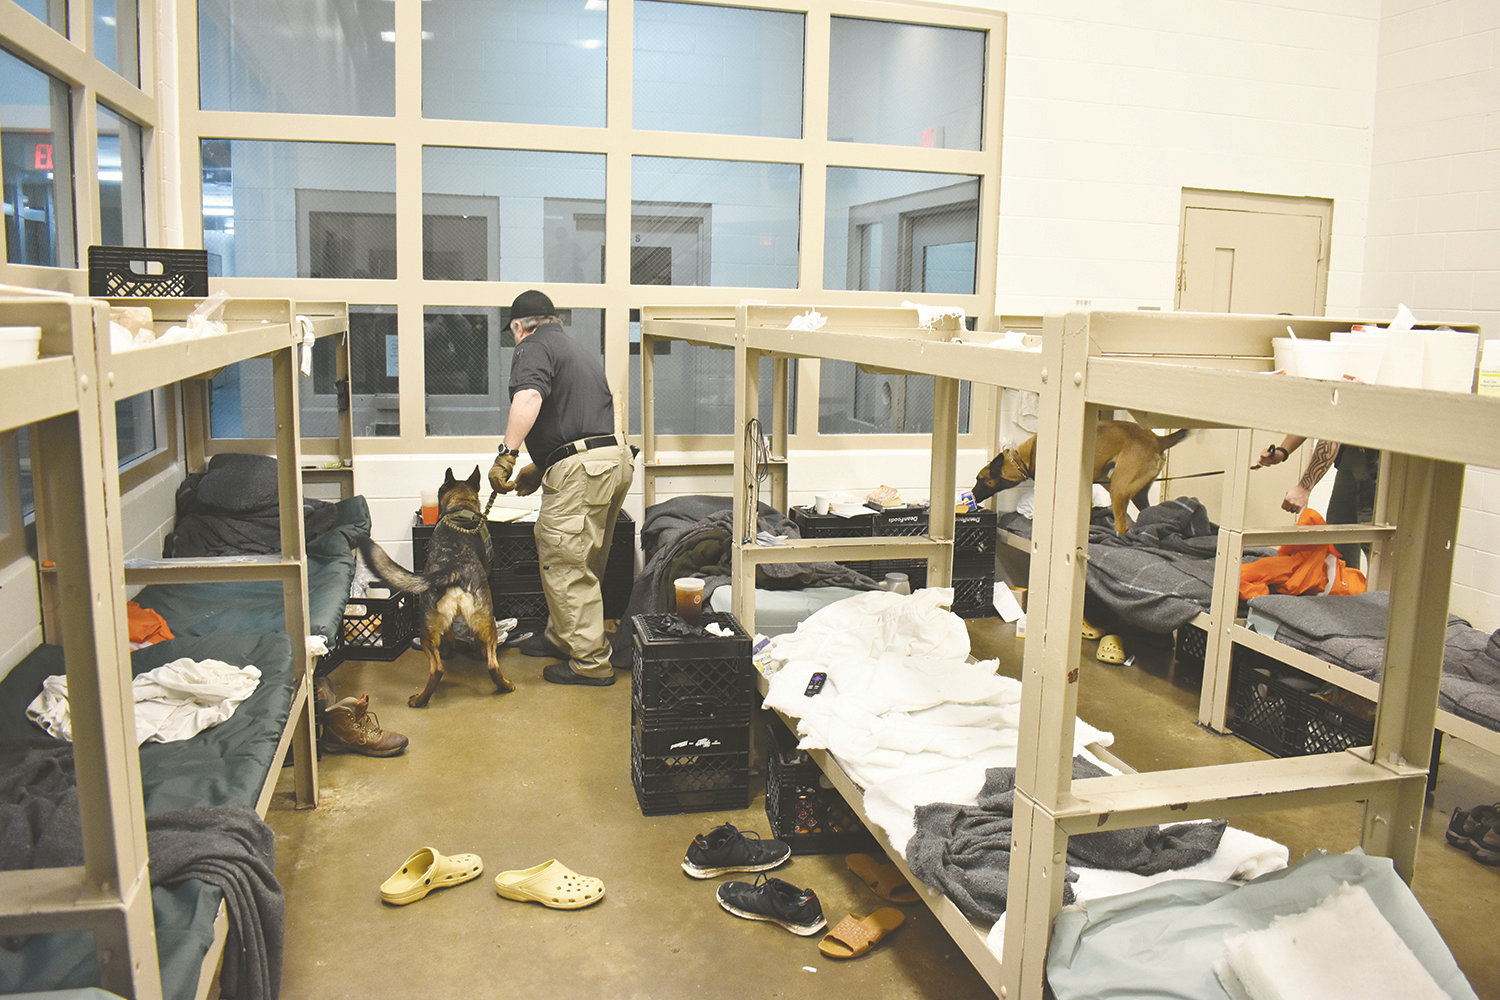 Death after death at Walker County, the worst jail in